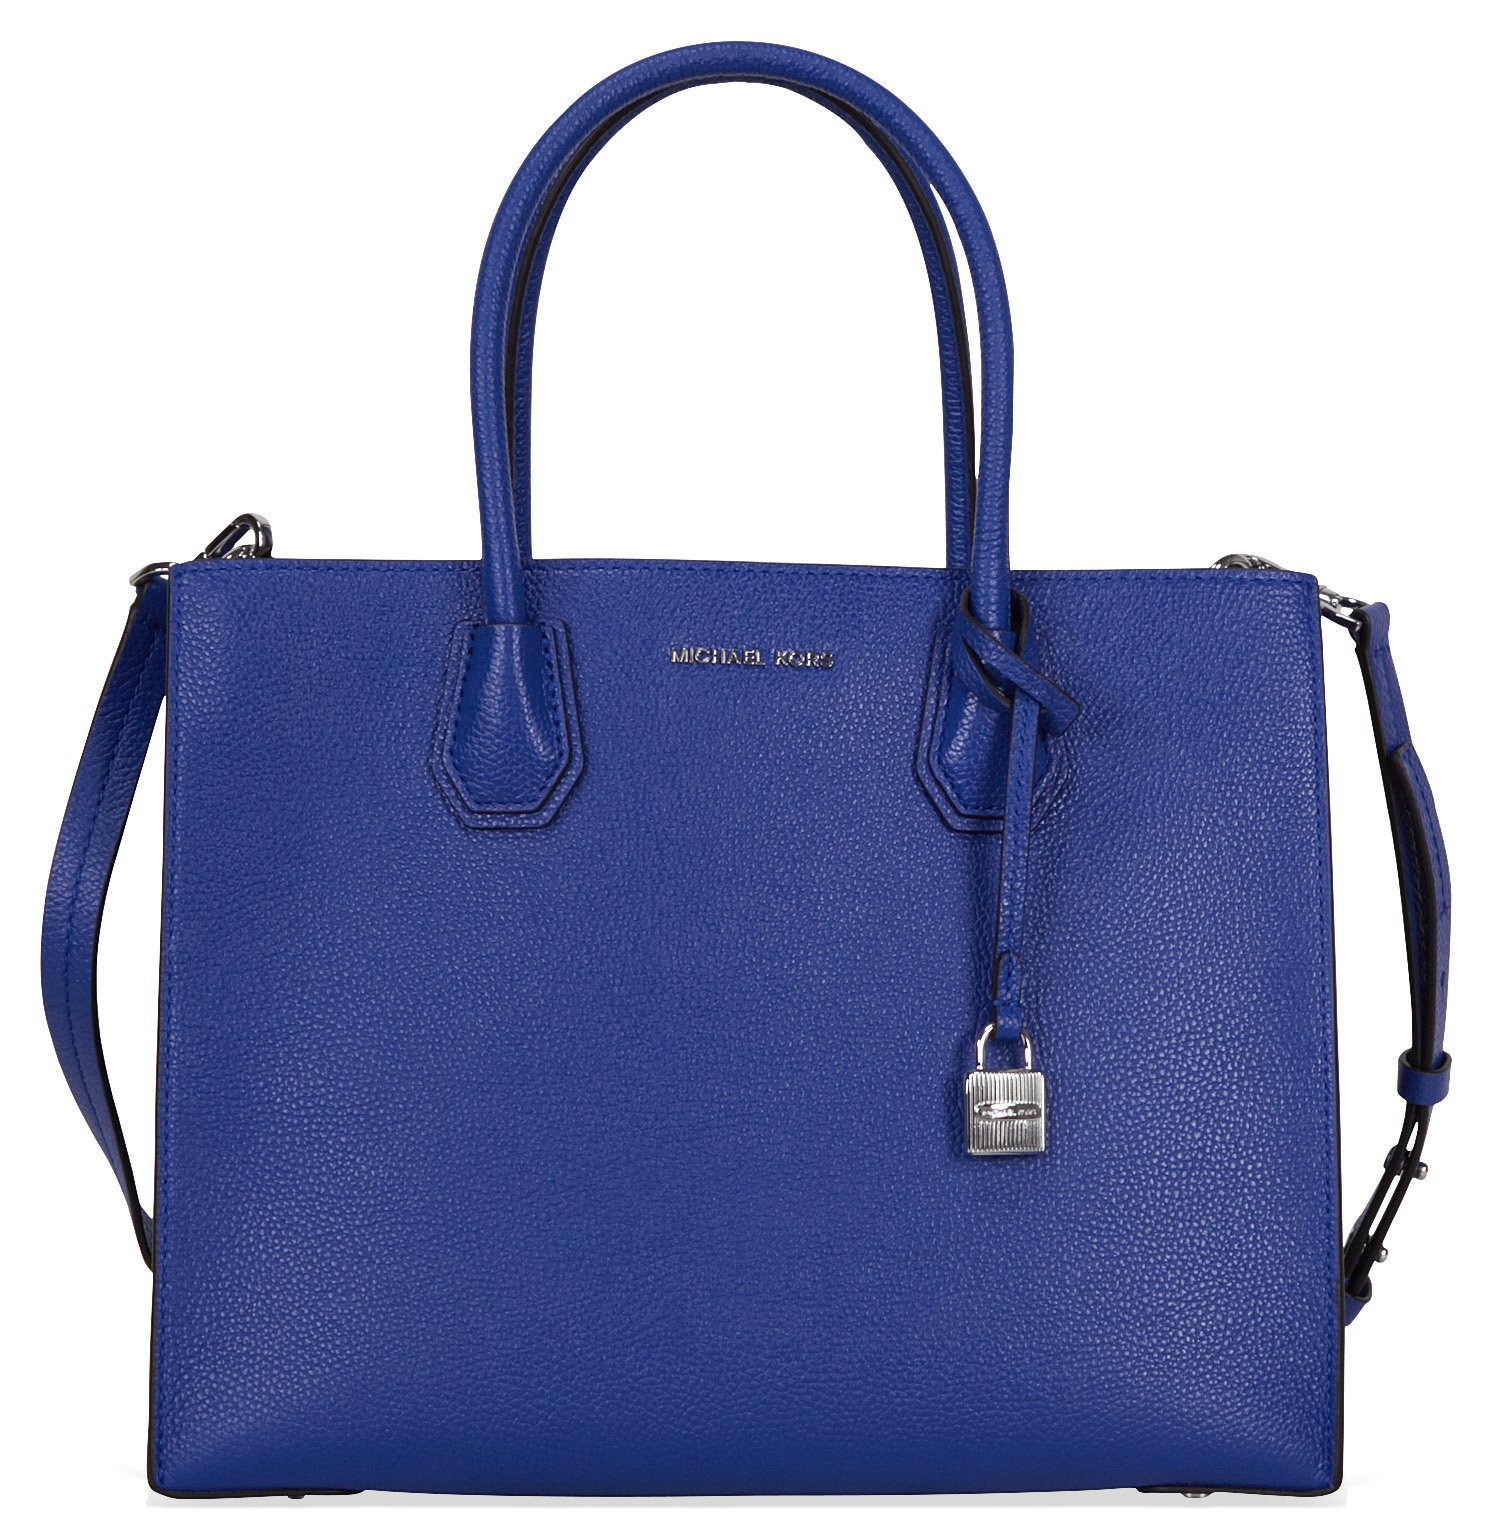 Michael Kors Mercer Large Bonded Leather Tote - Electric Blue